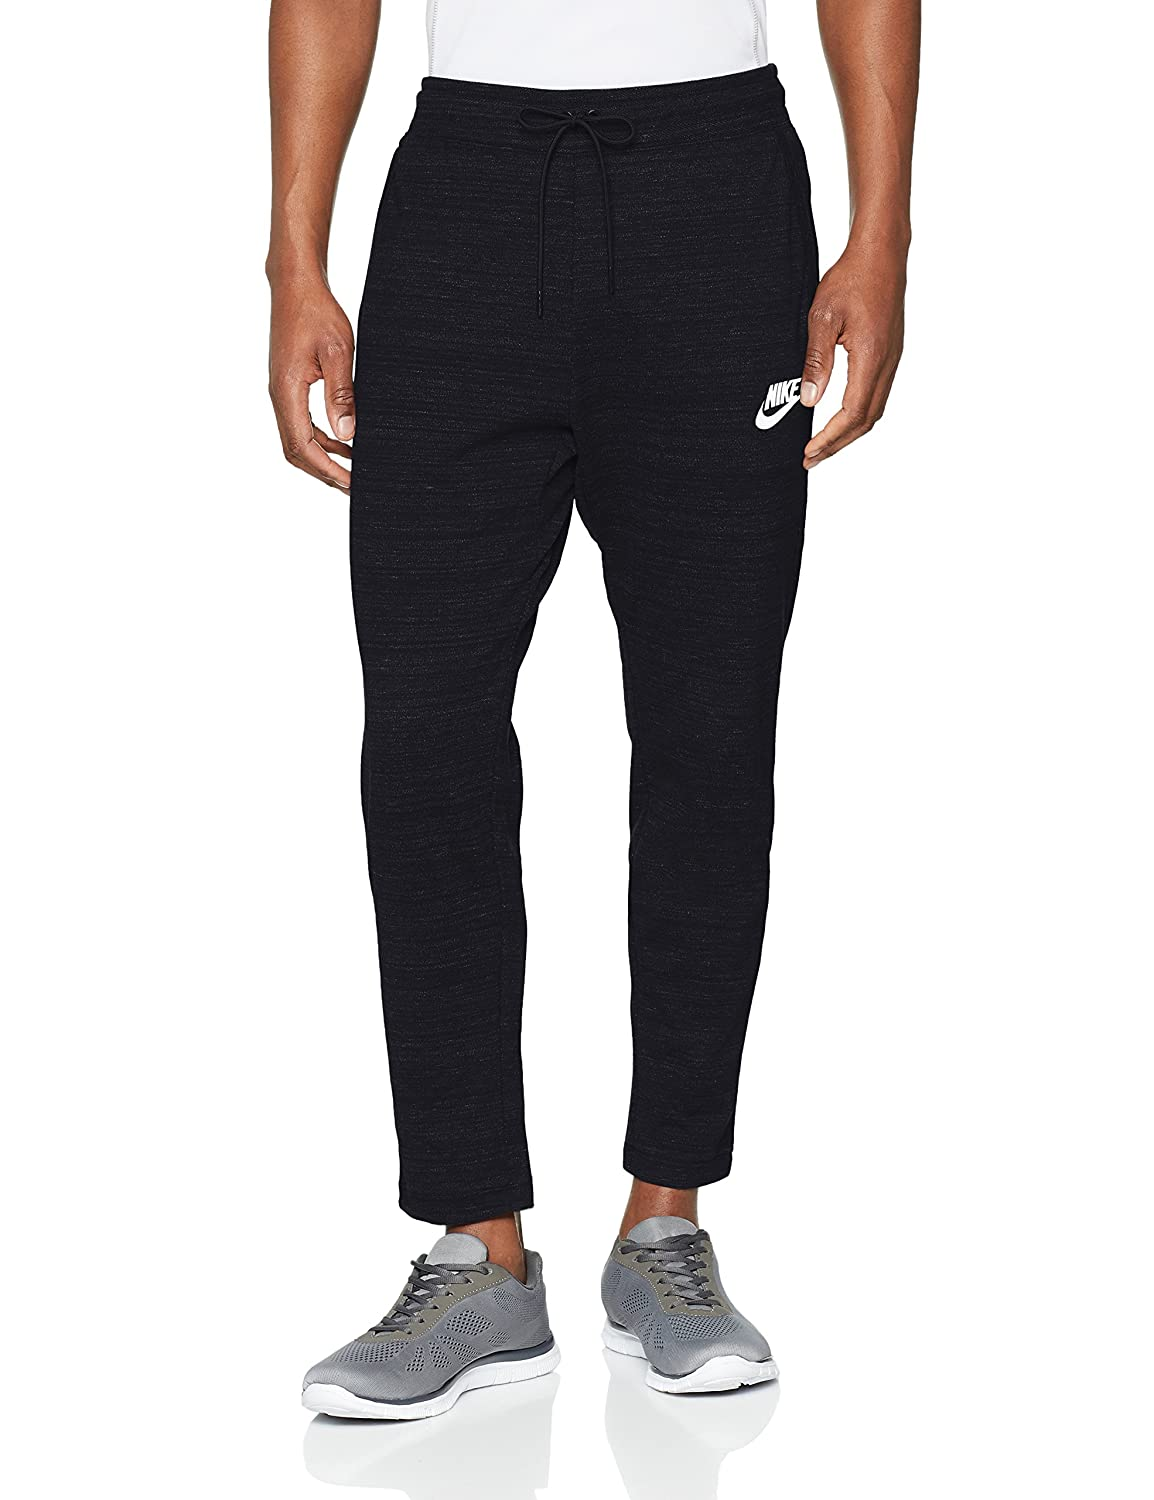 Nike Mens Av15 Knit Jogger Sweatpants by Nike